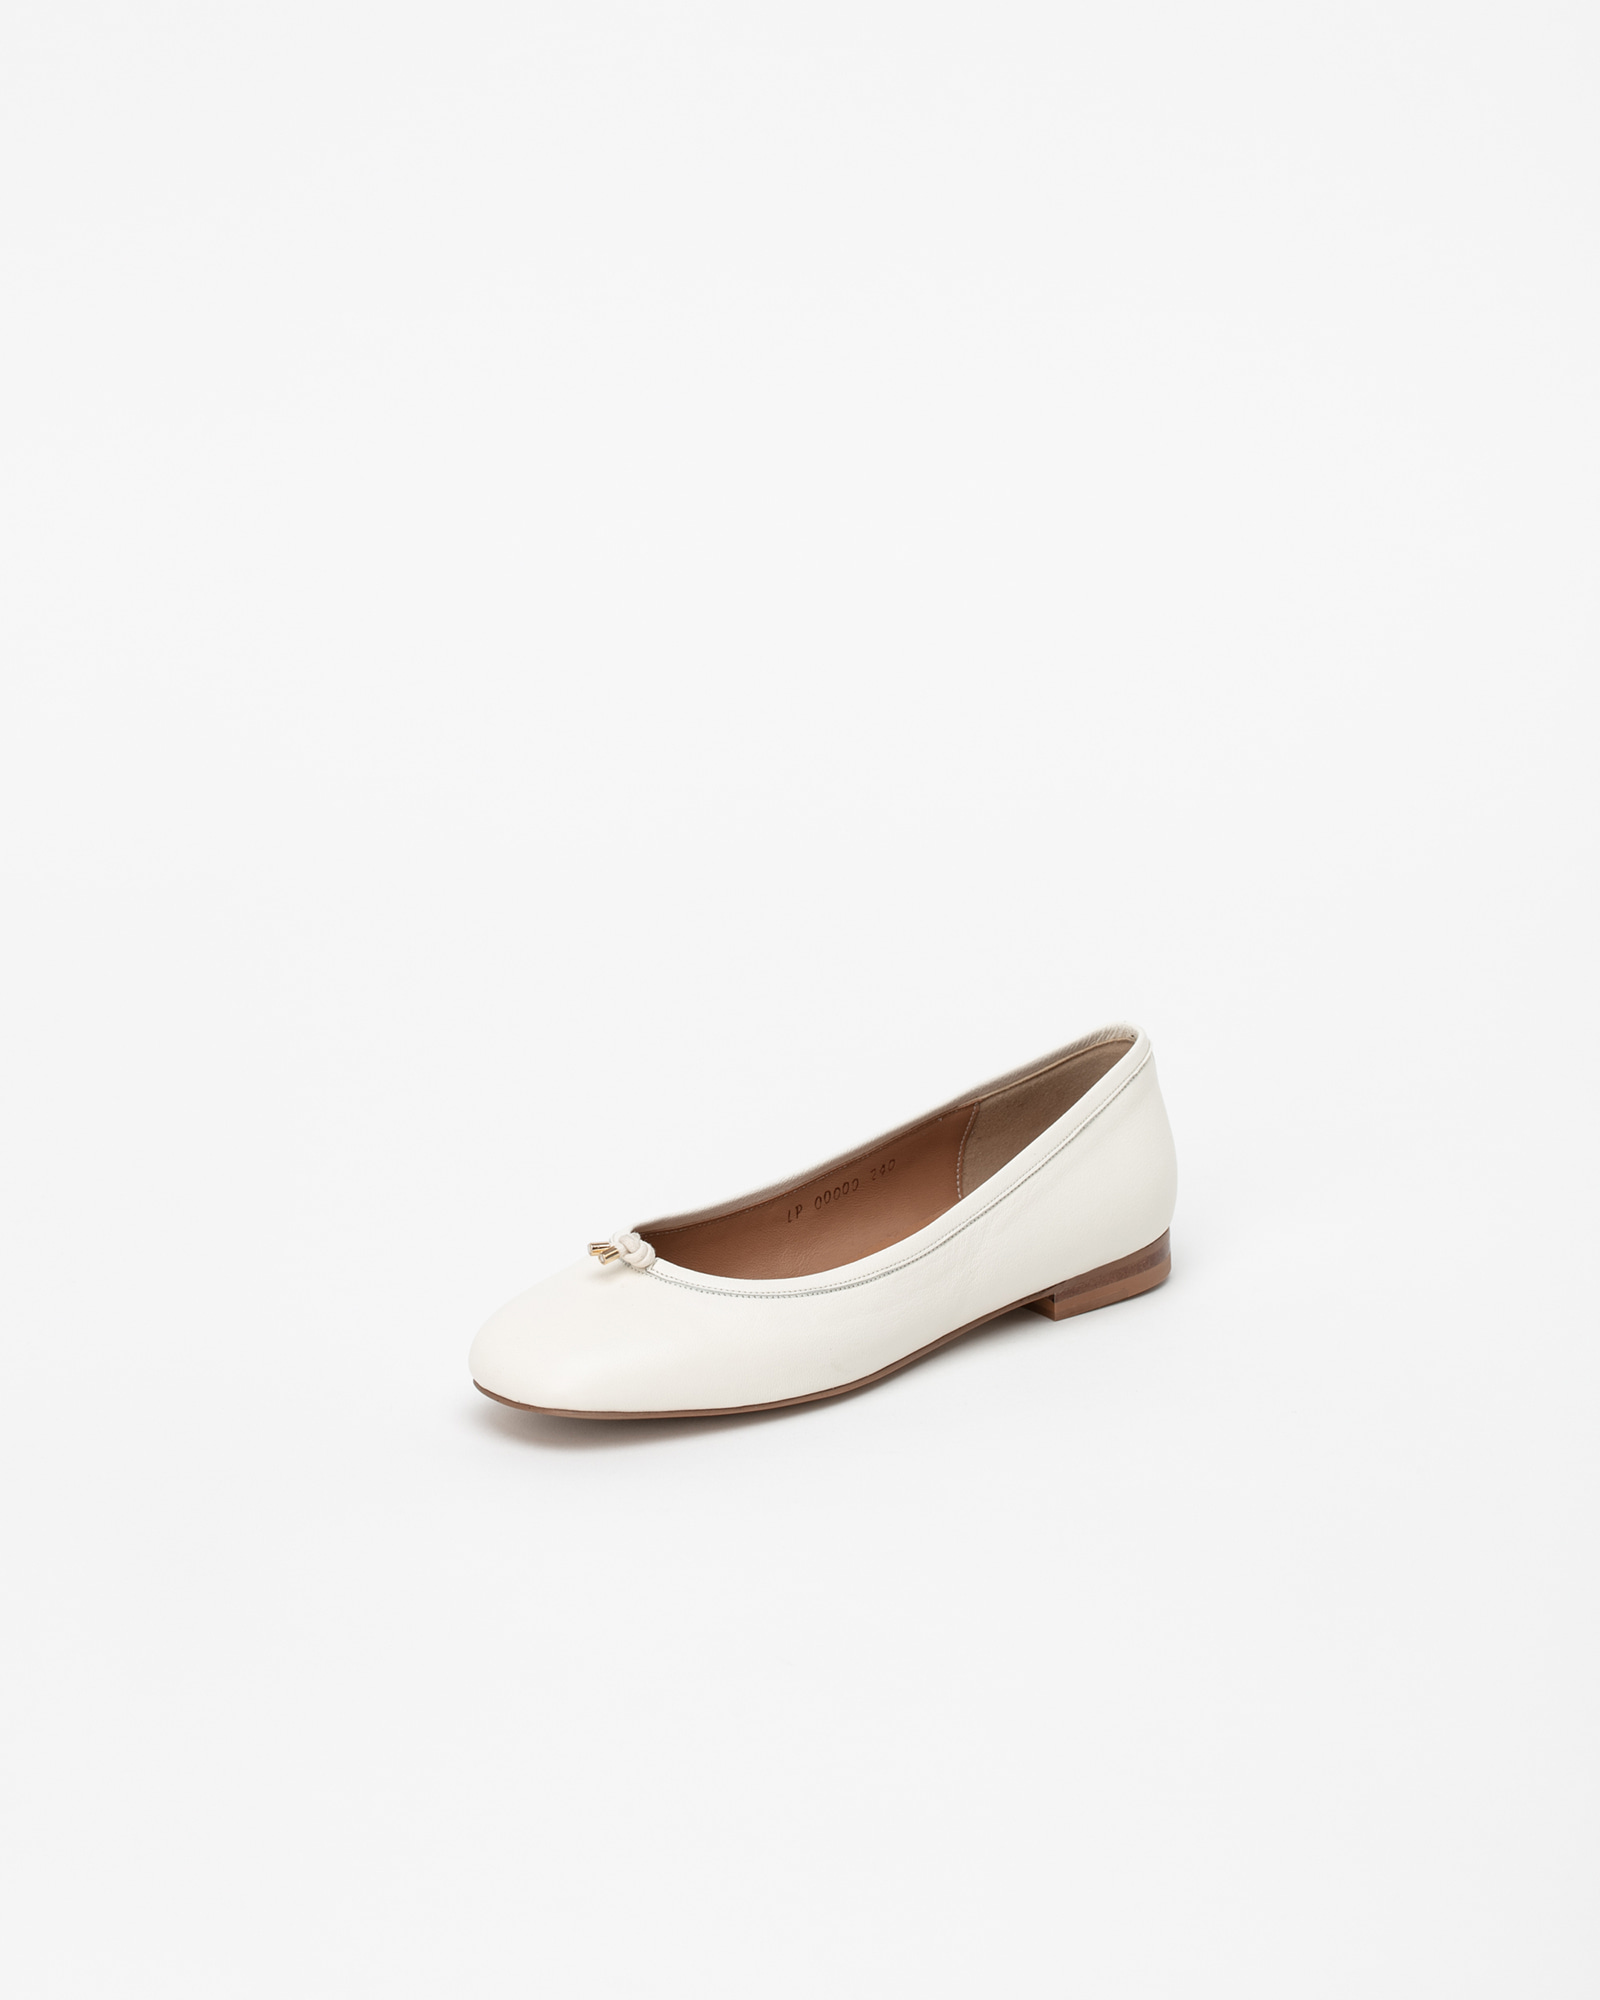 Meringue Soft Flat Shoes in White